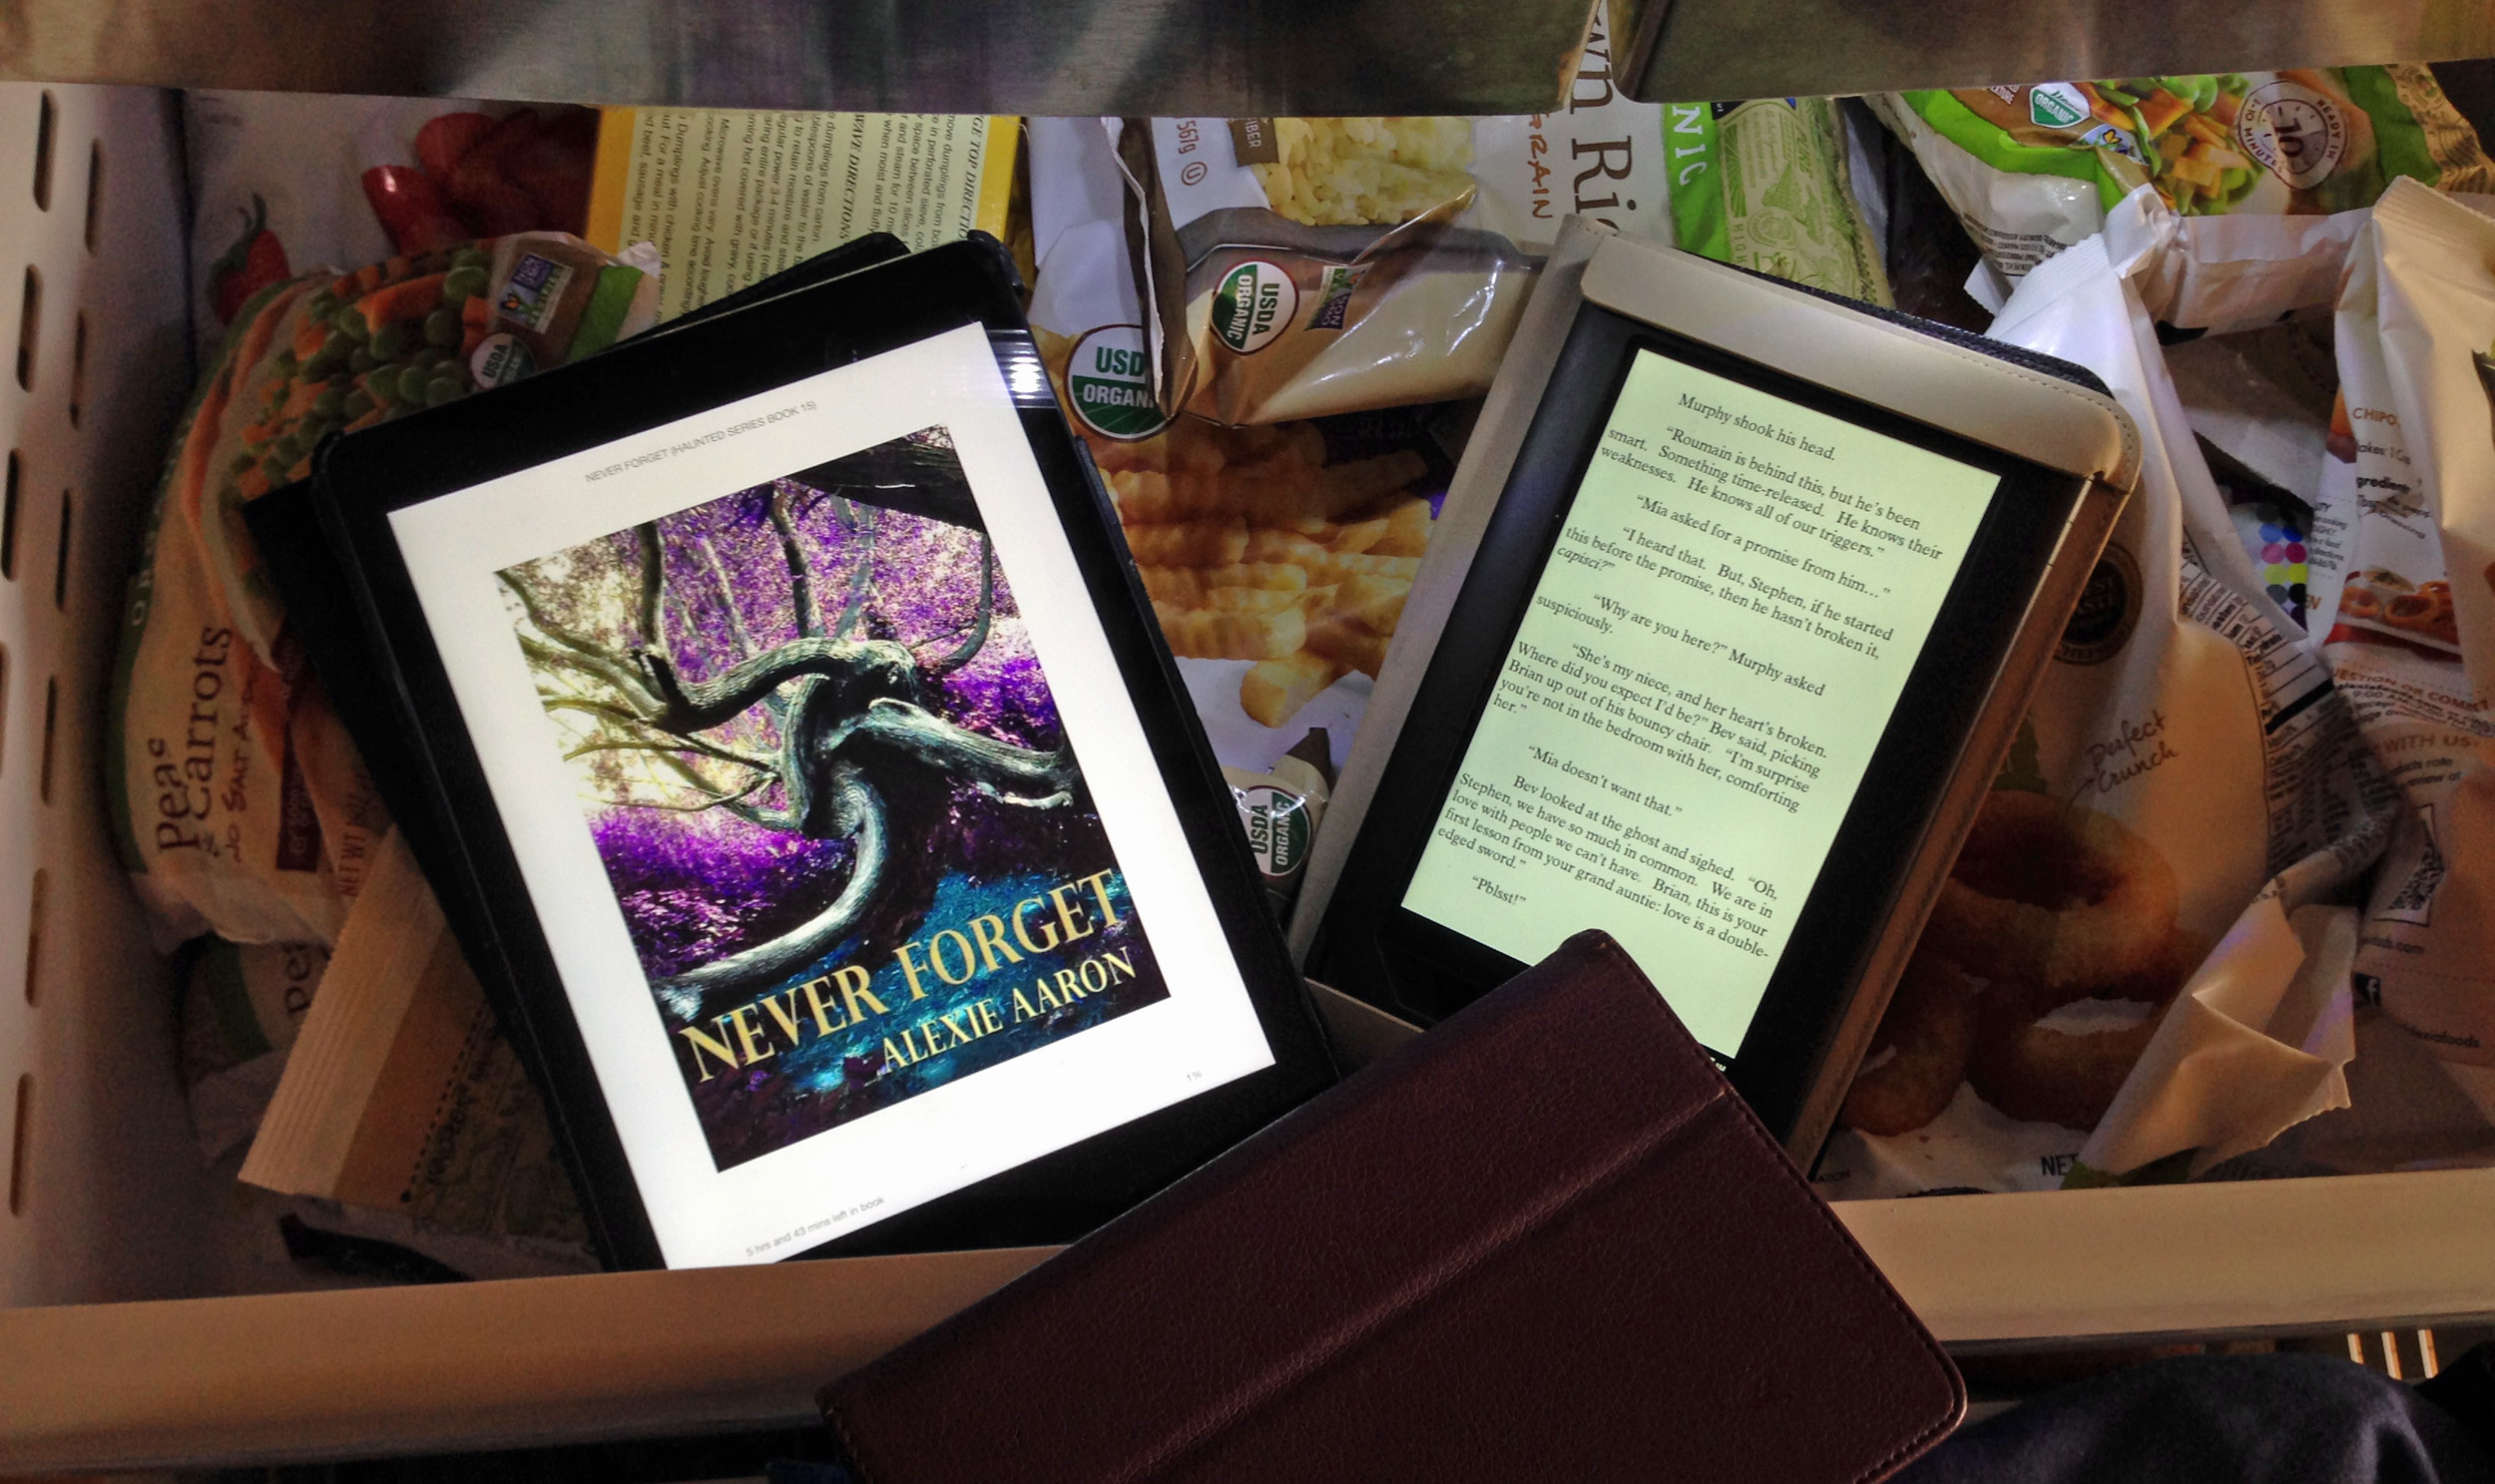 No ereaders have been harmed in the making of this blog post...much.